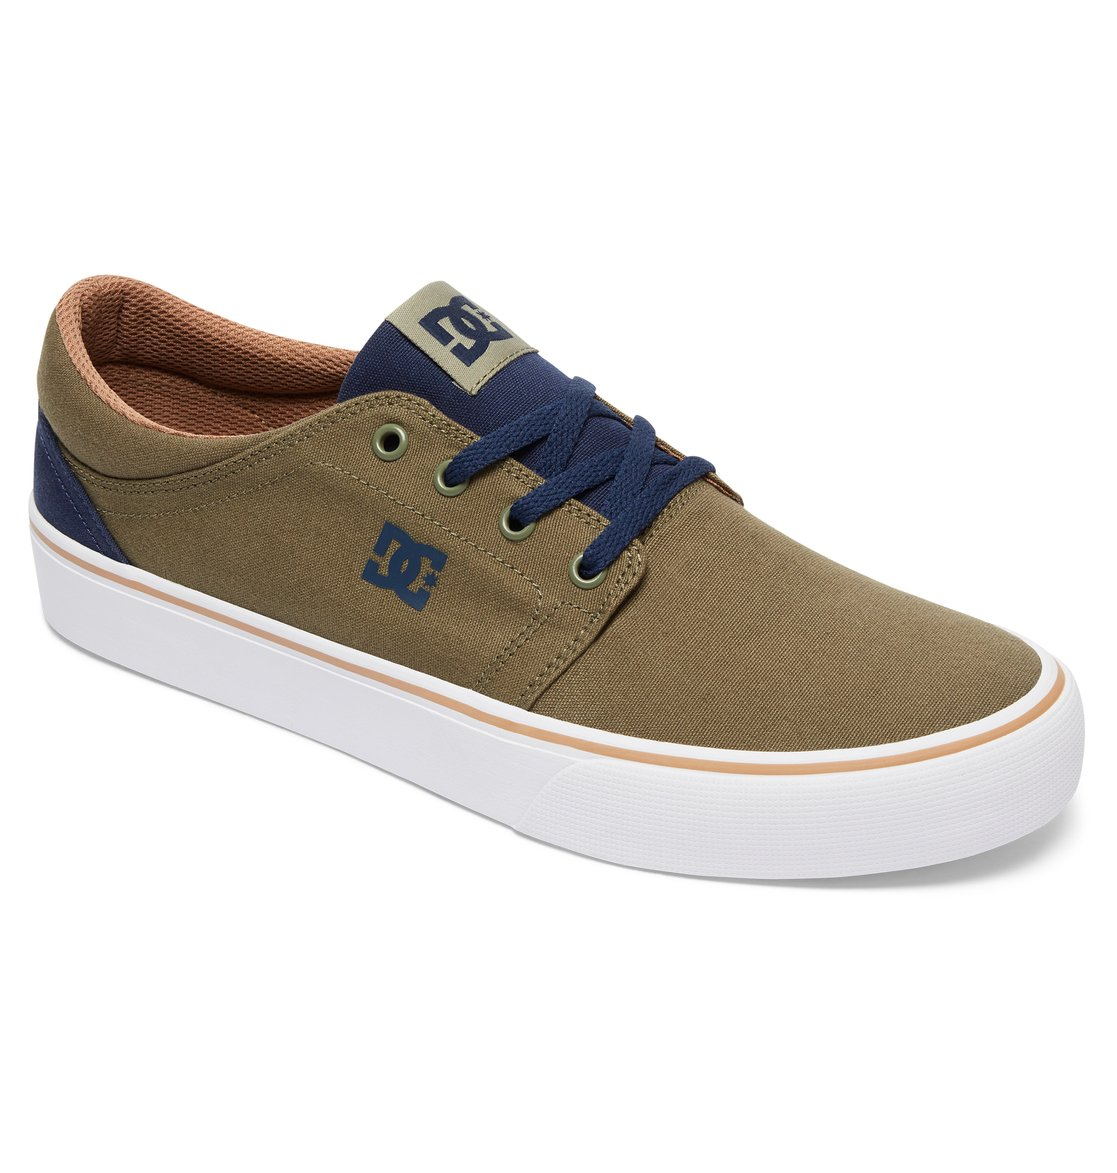 dc shoes trase tx chaussures pour homme adys300126 ebay. Black Bedroom Furniture Sets. Home Design Ideas